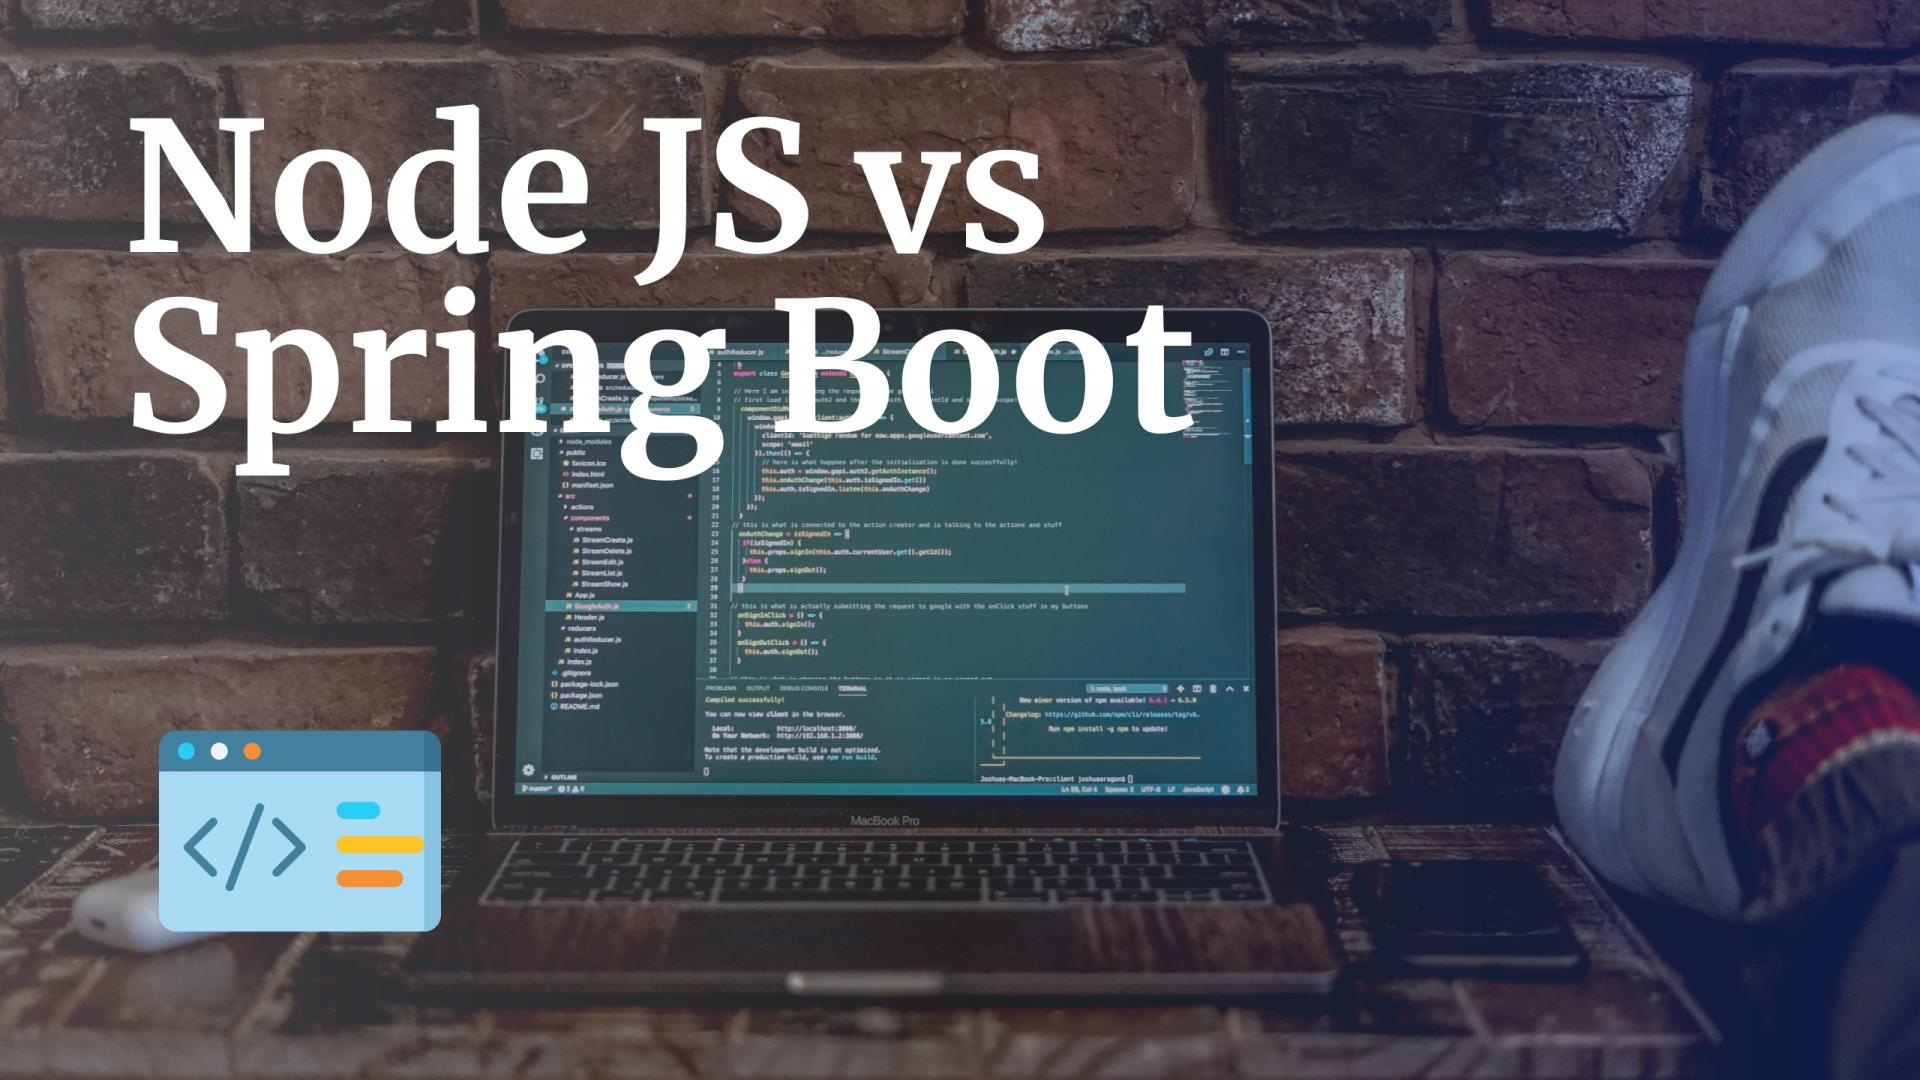 Node JS vs Spring Boot